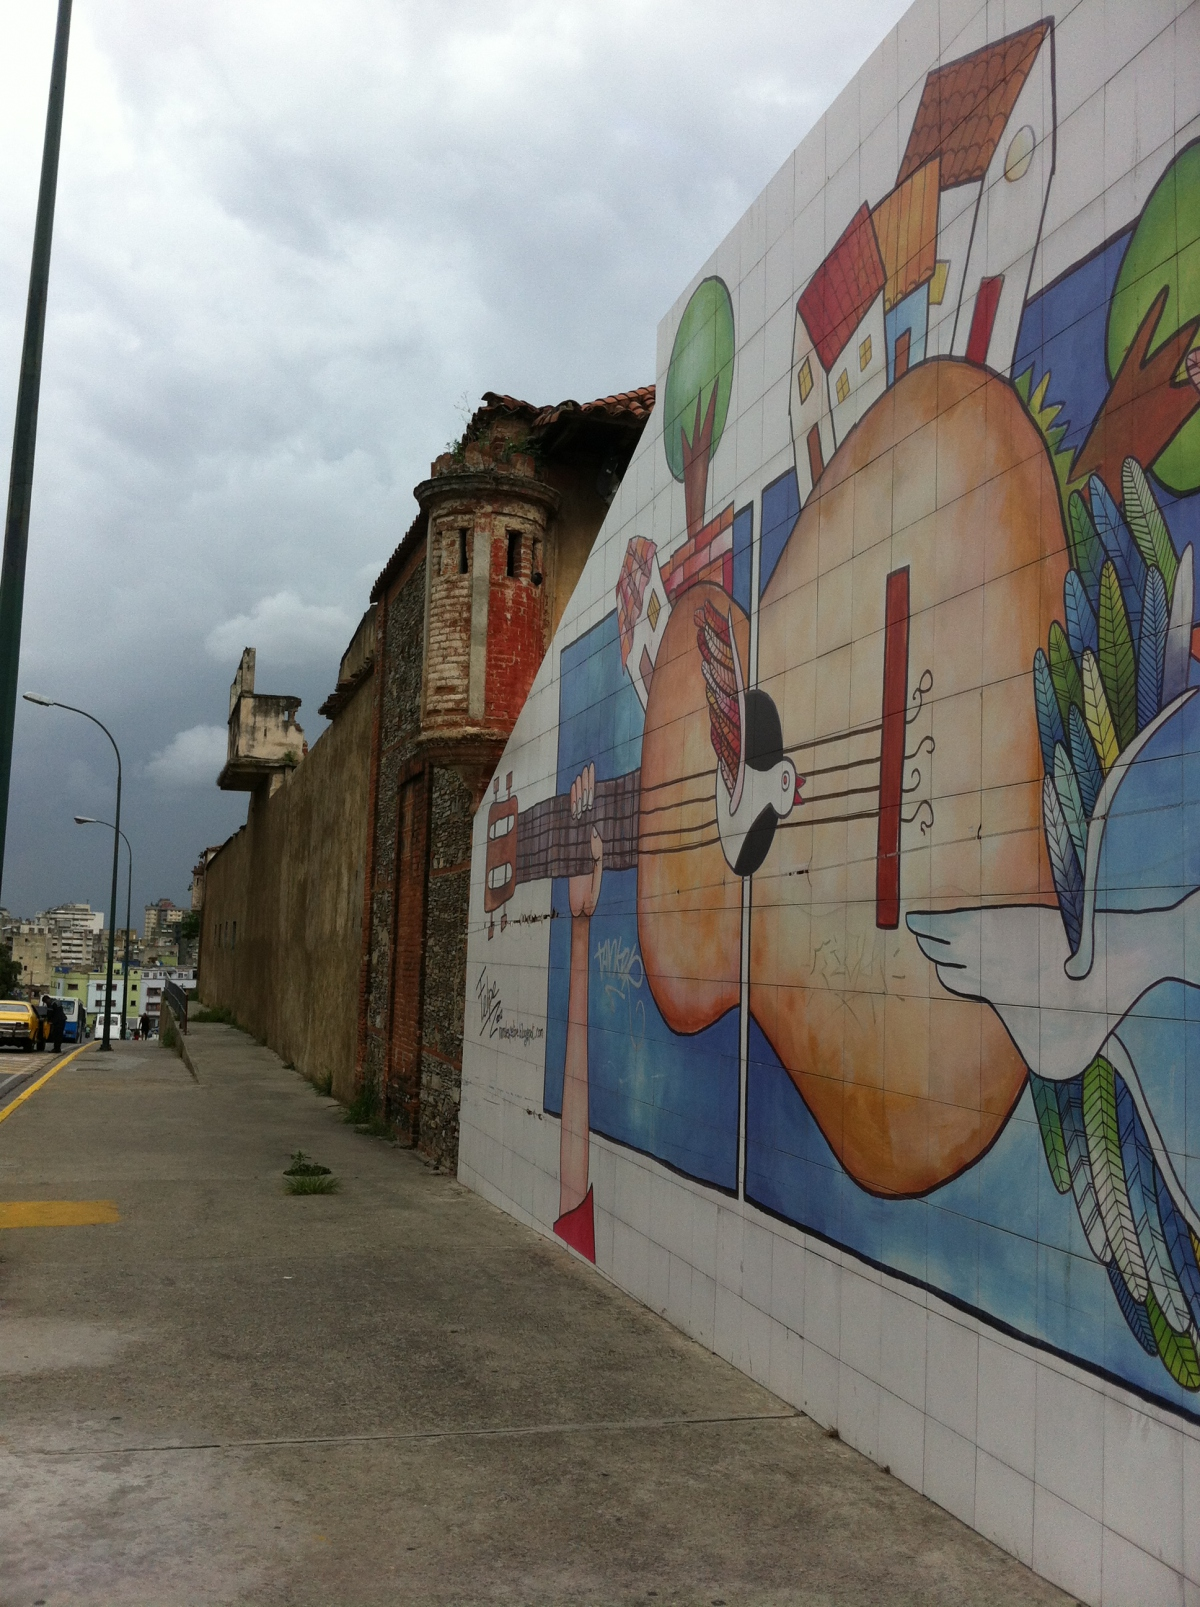 A newer mural painted next to the ancient San Carlos former prison.